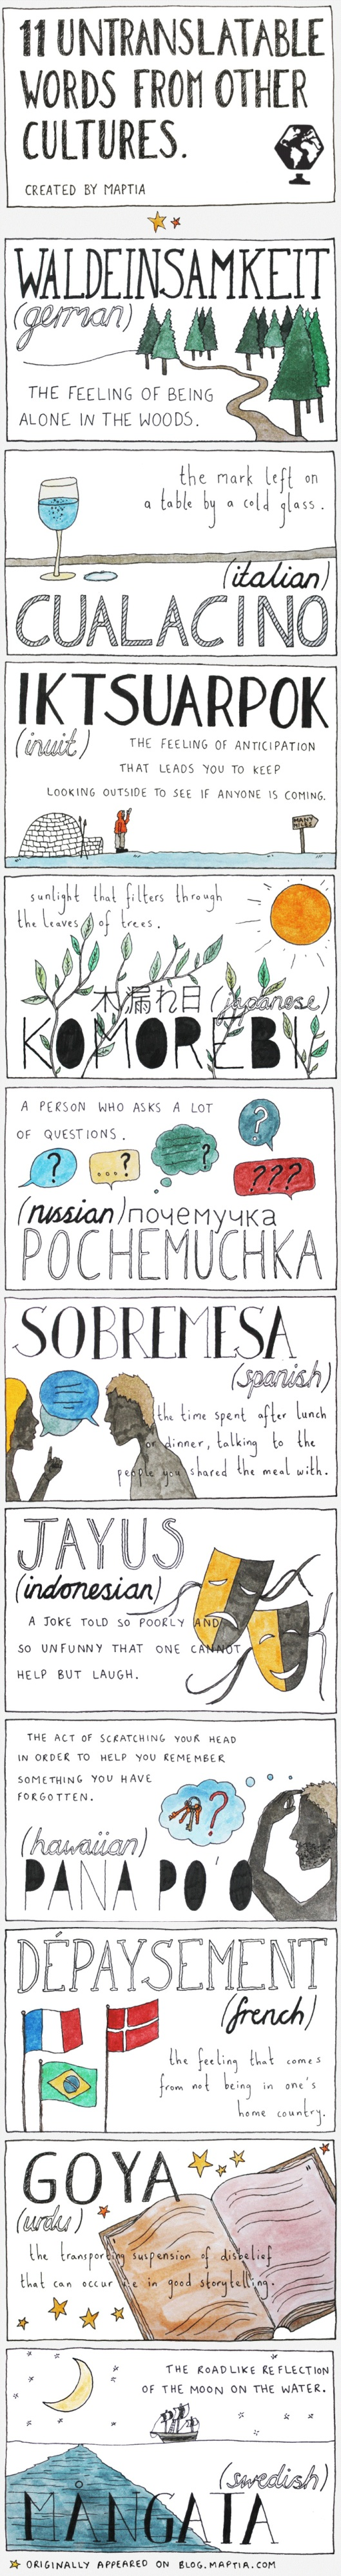 Untranslatable Words